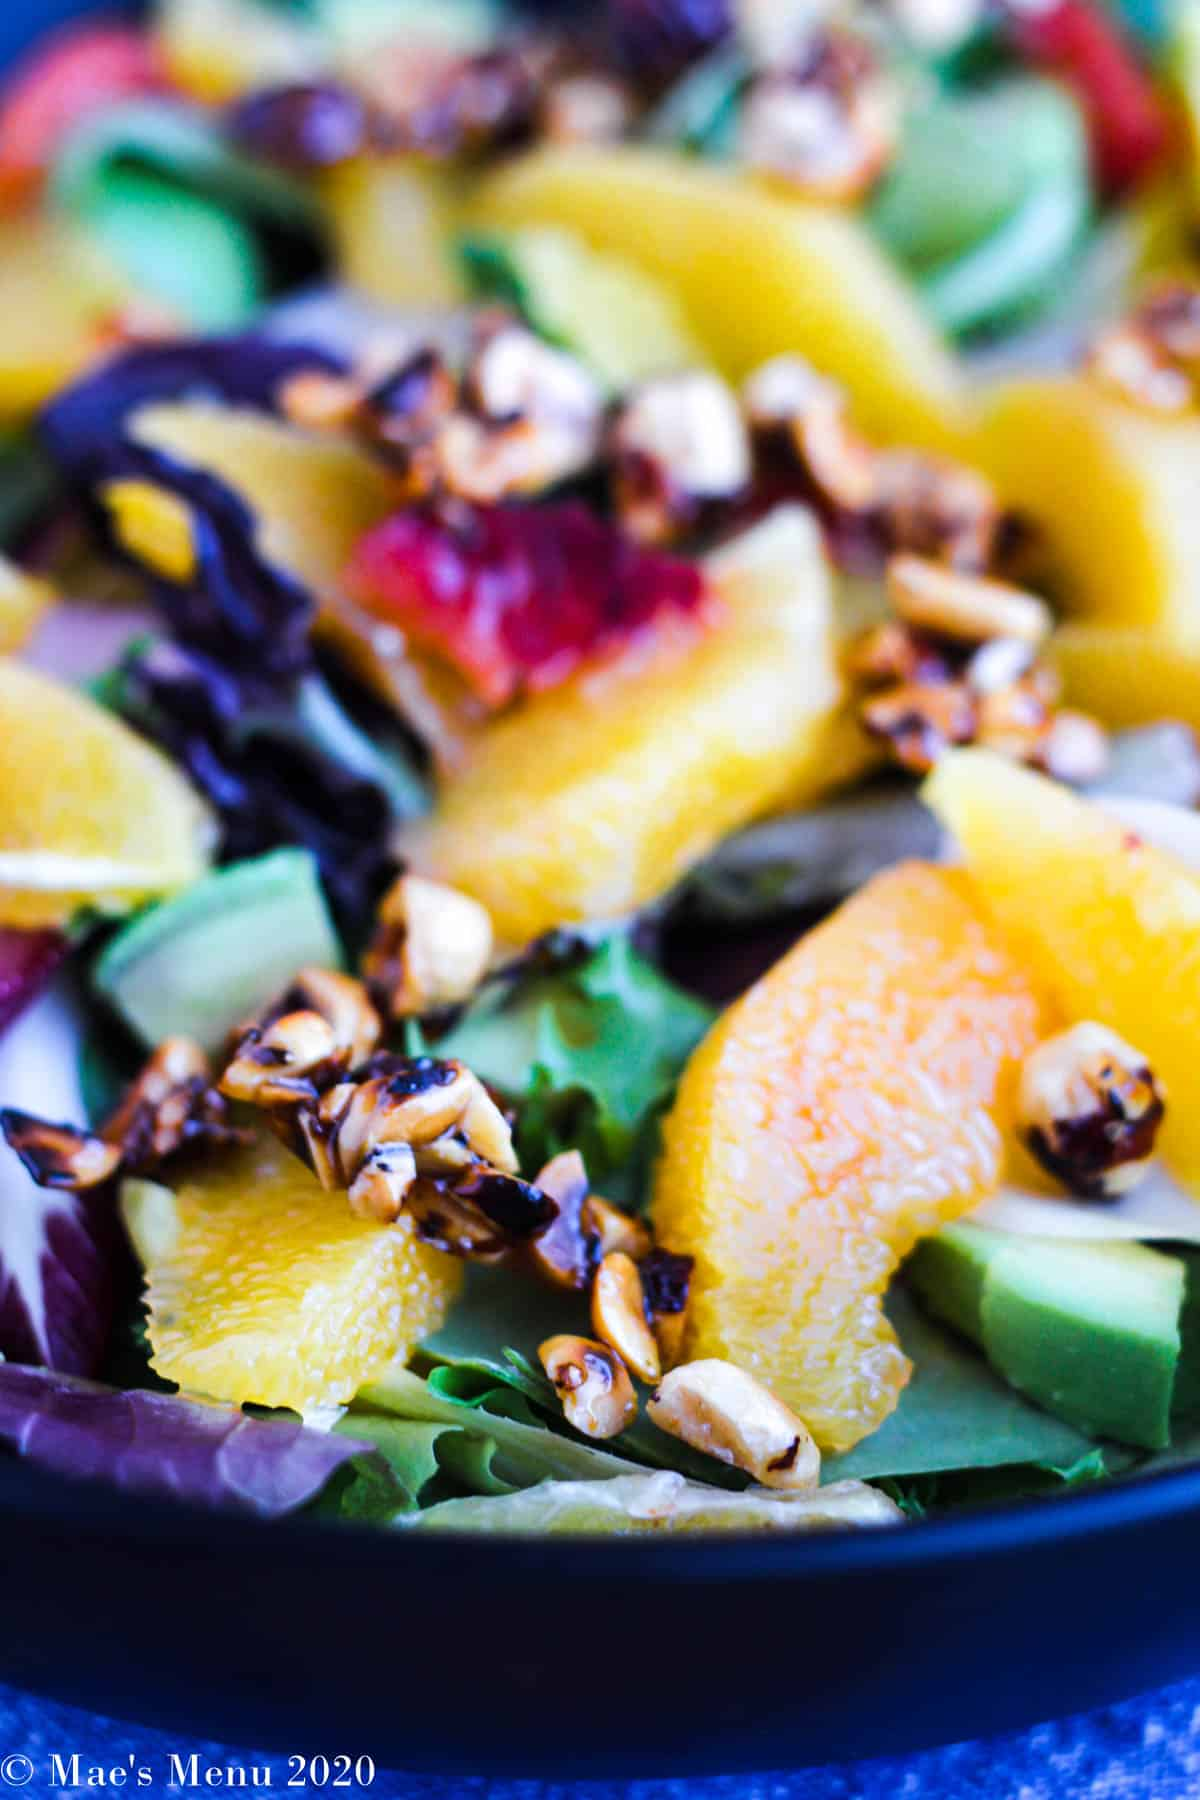 An up-close side shot of a bowl of orange salad with honeyed hazelnuts